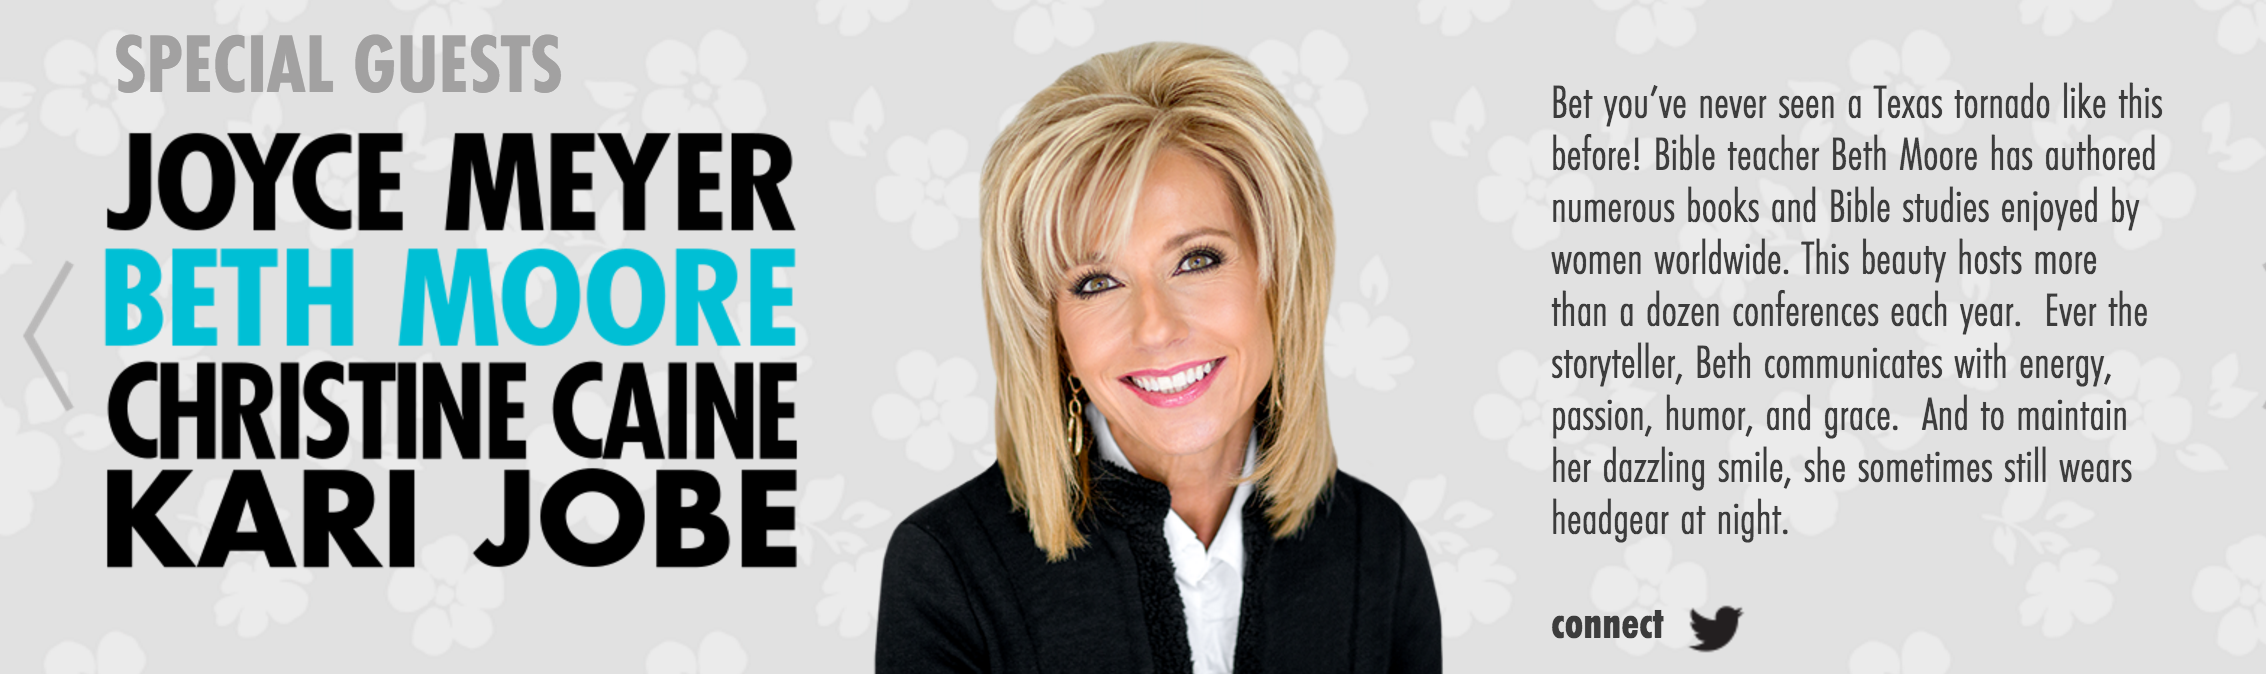 Beth Moore Teams Up With Joyce Meyer for LoveLife 2016